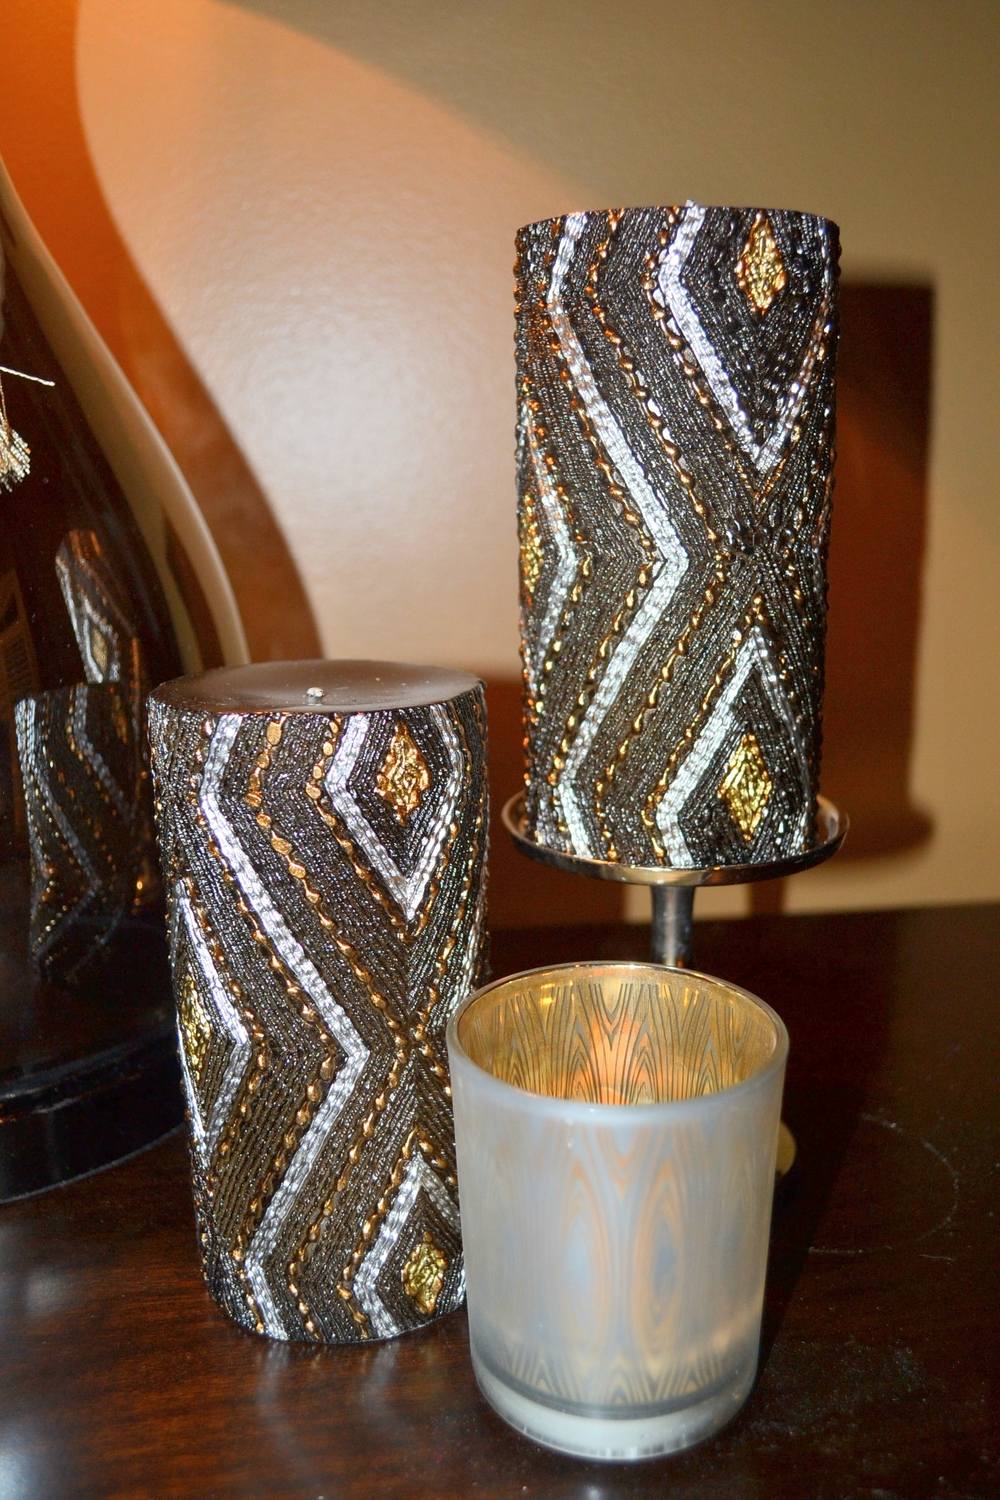 Chocolate, silver, and gold textured candles